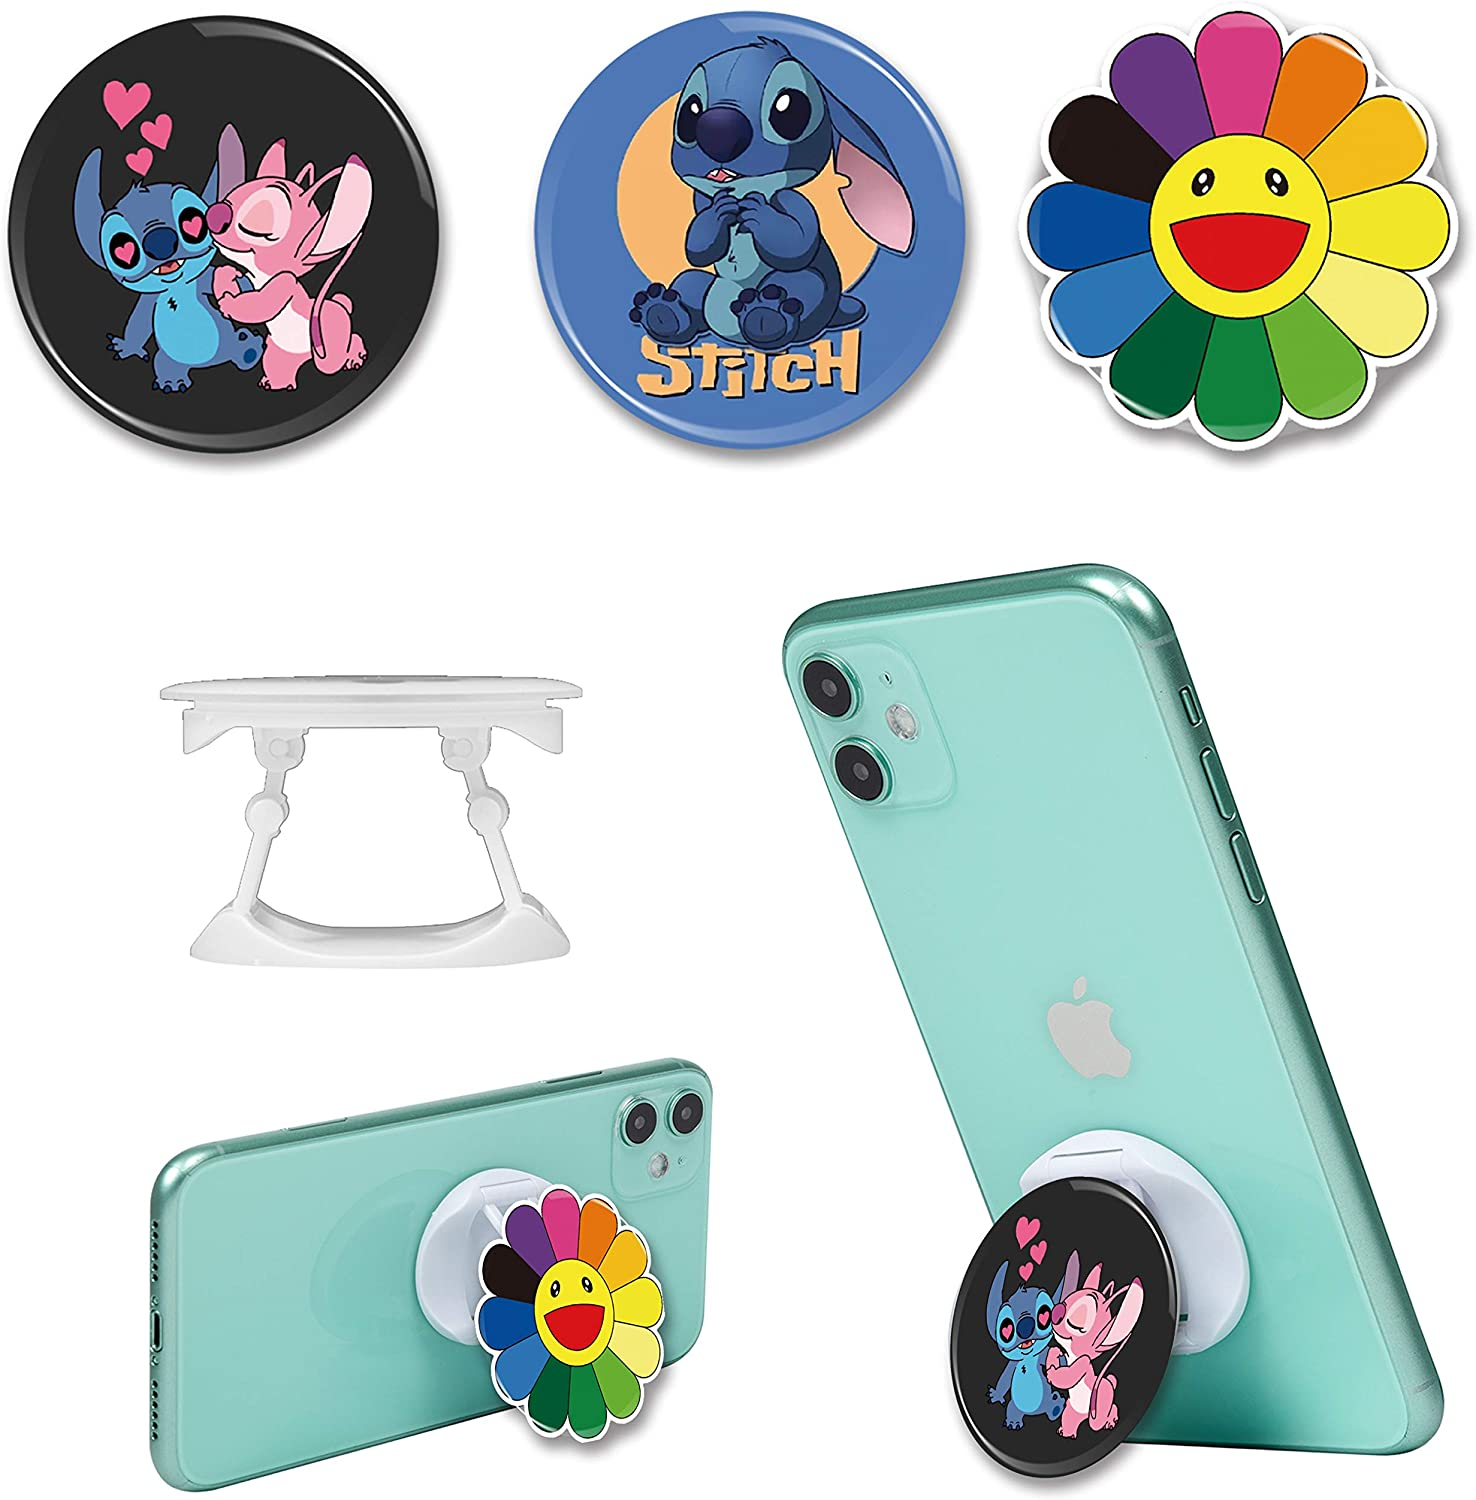 STSNano for Cell Phone Hand Holder, Cartoon Kawaii Cute Fun Cool Funny for Girls Women, Phone Back Ring Finger Holder Stand Pop for iPhone/Android Phone/Samsung/LG/Motorola (Stitch&Sun Flower-3 Packs)